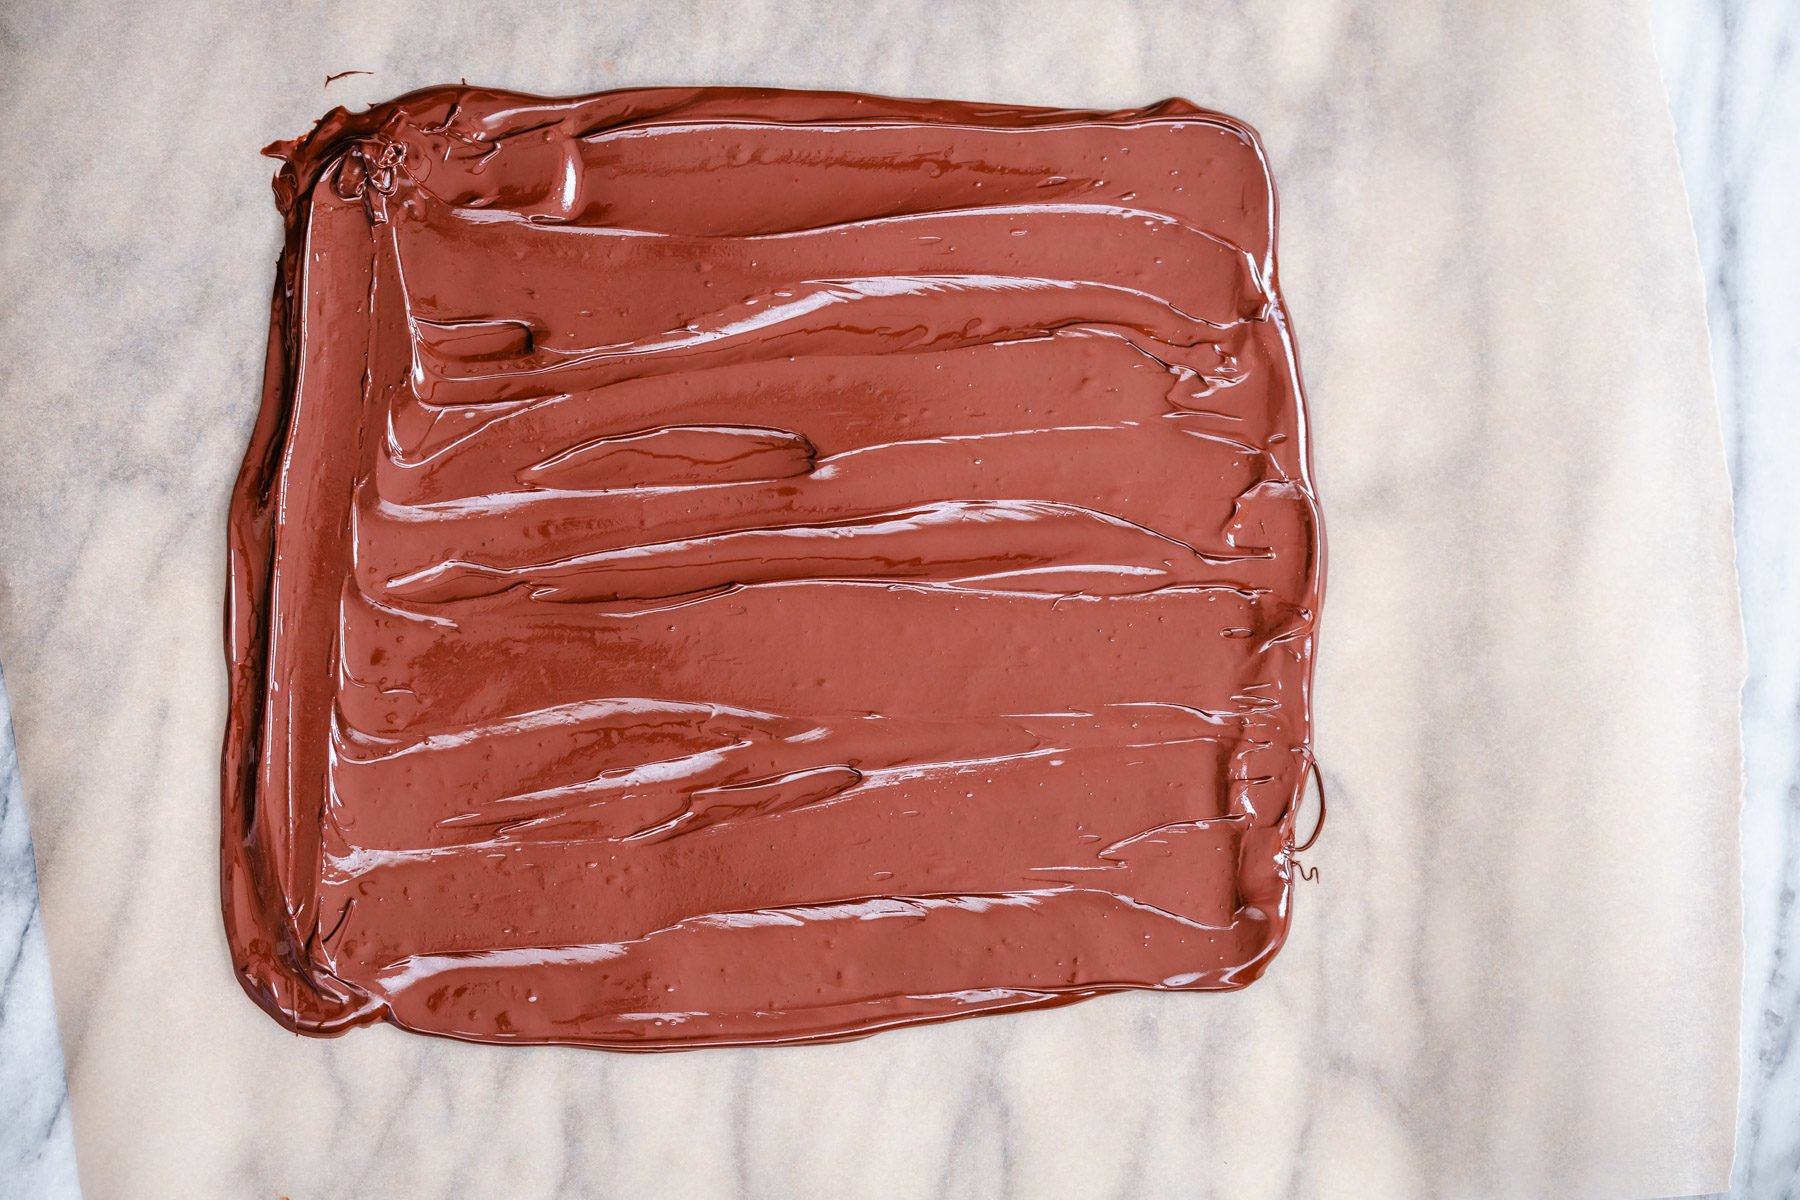 melted chocolate being spread out into a rectangle to make chocolate bark